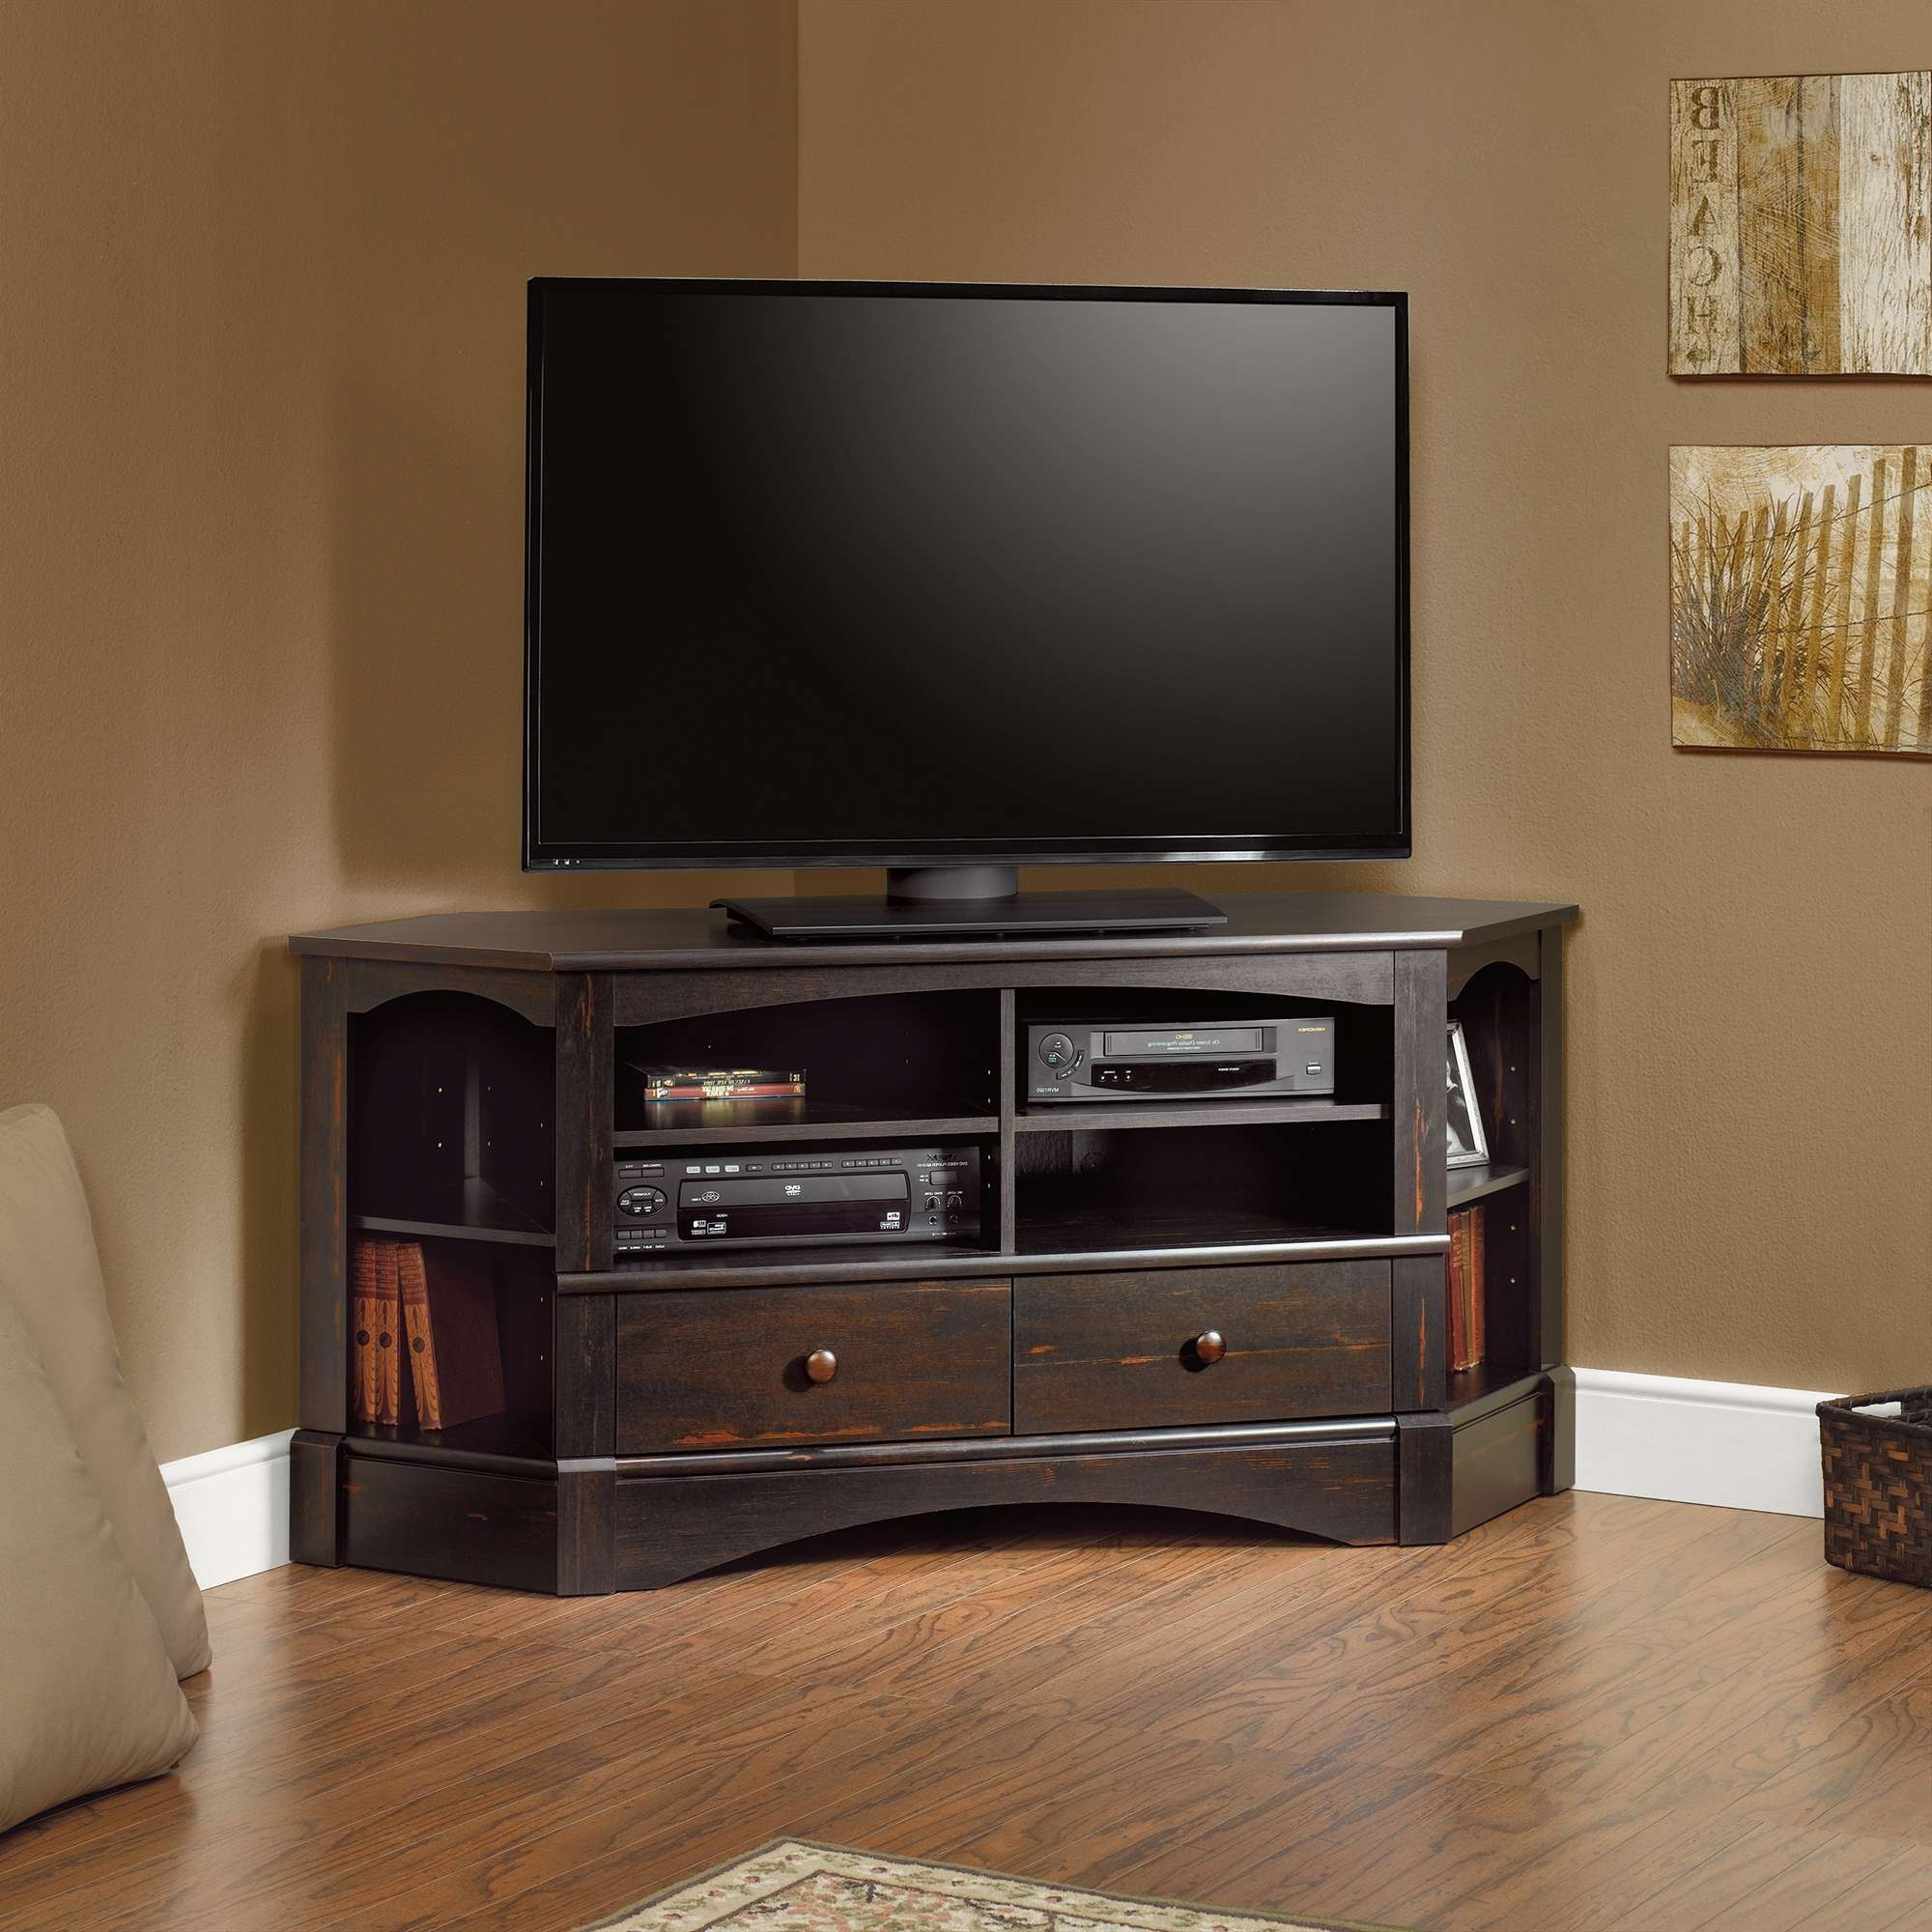 Harbor View | Corner Entertainment Credenza | 402902 | Sauder Intended For Corner Tv Cabinets (View 4 of 20)